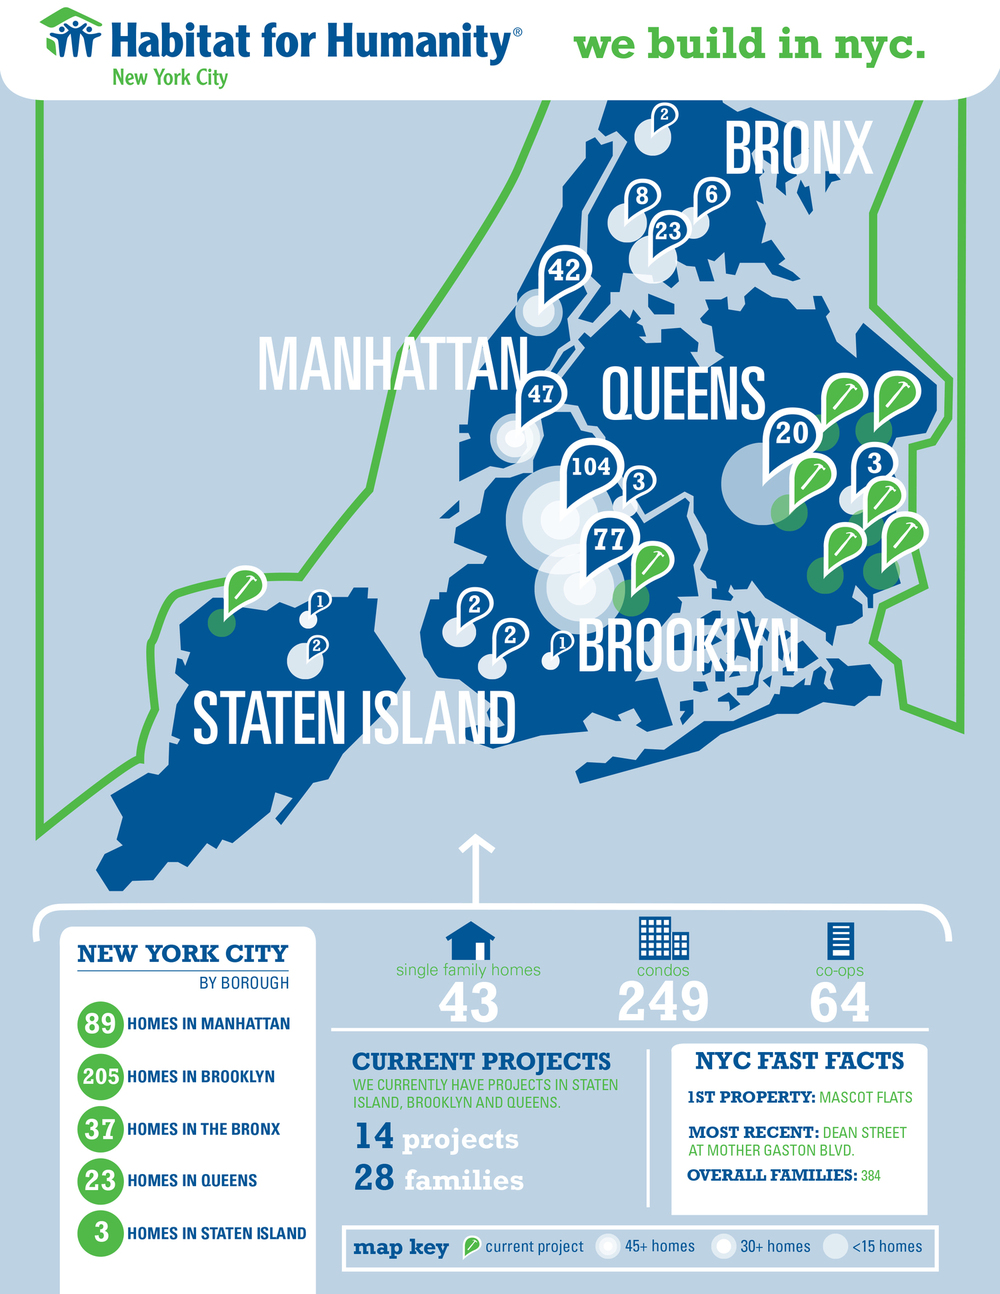 habitat-nyc-construction-map.jpg